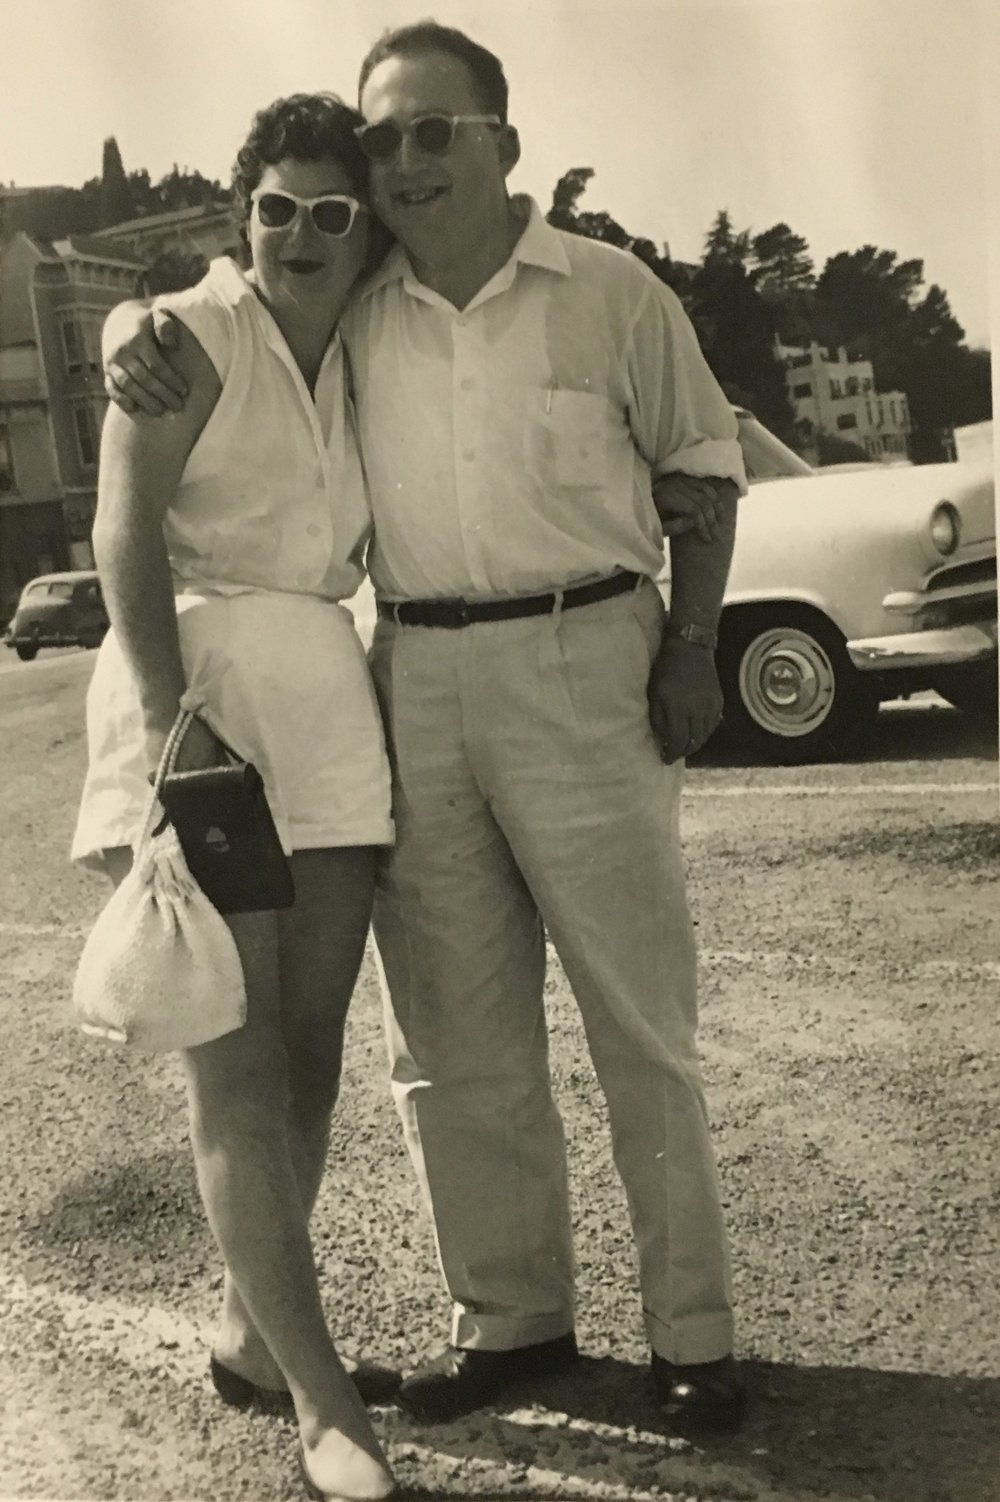 My parents when they were engaged.